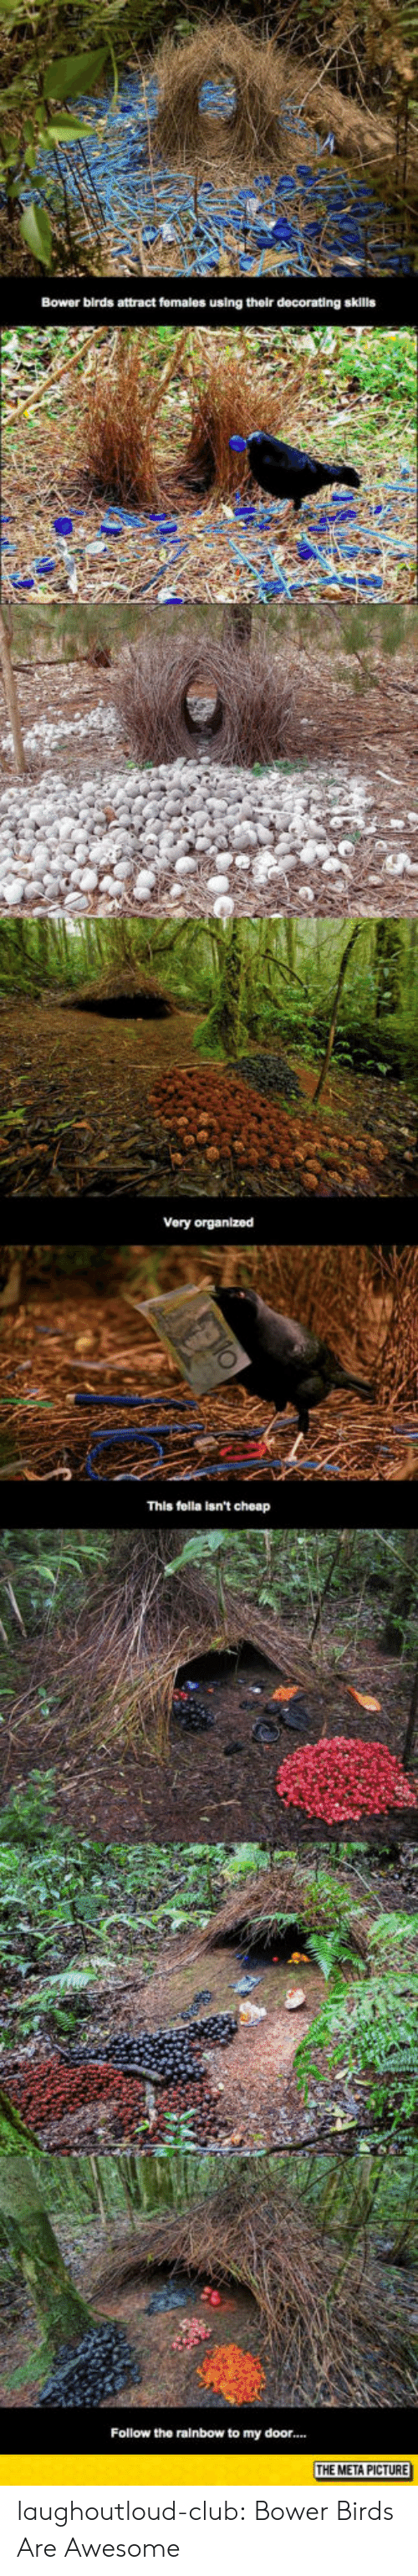 Club, Tumblr, and Birds: Bower birds attract fomales using their decorating skills  Very organlzed  This fella isn't cheap  Follow the rainbow to my door  E META PICTURE laughoutloud-club:  Bower Birds Are Awesome